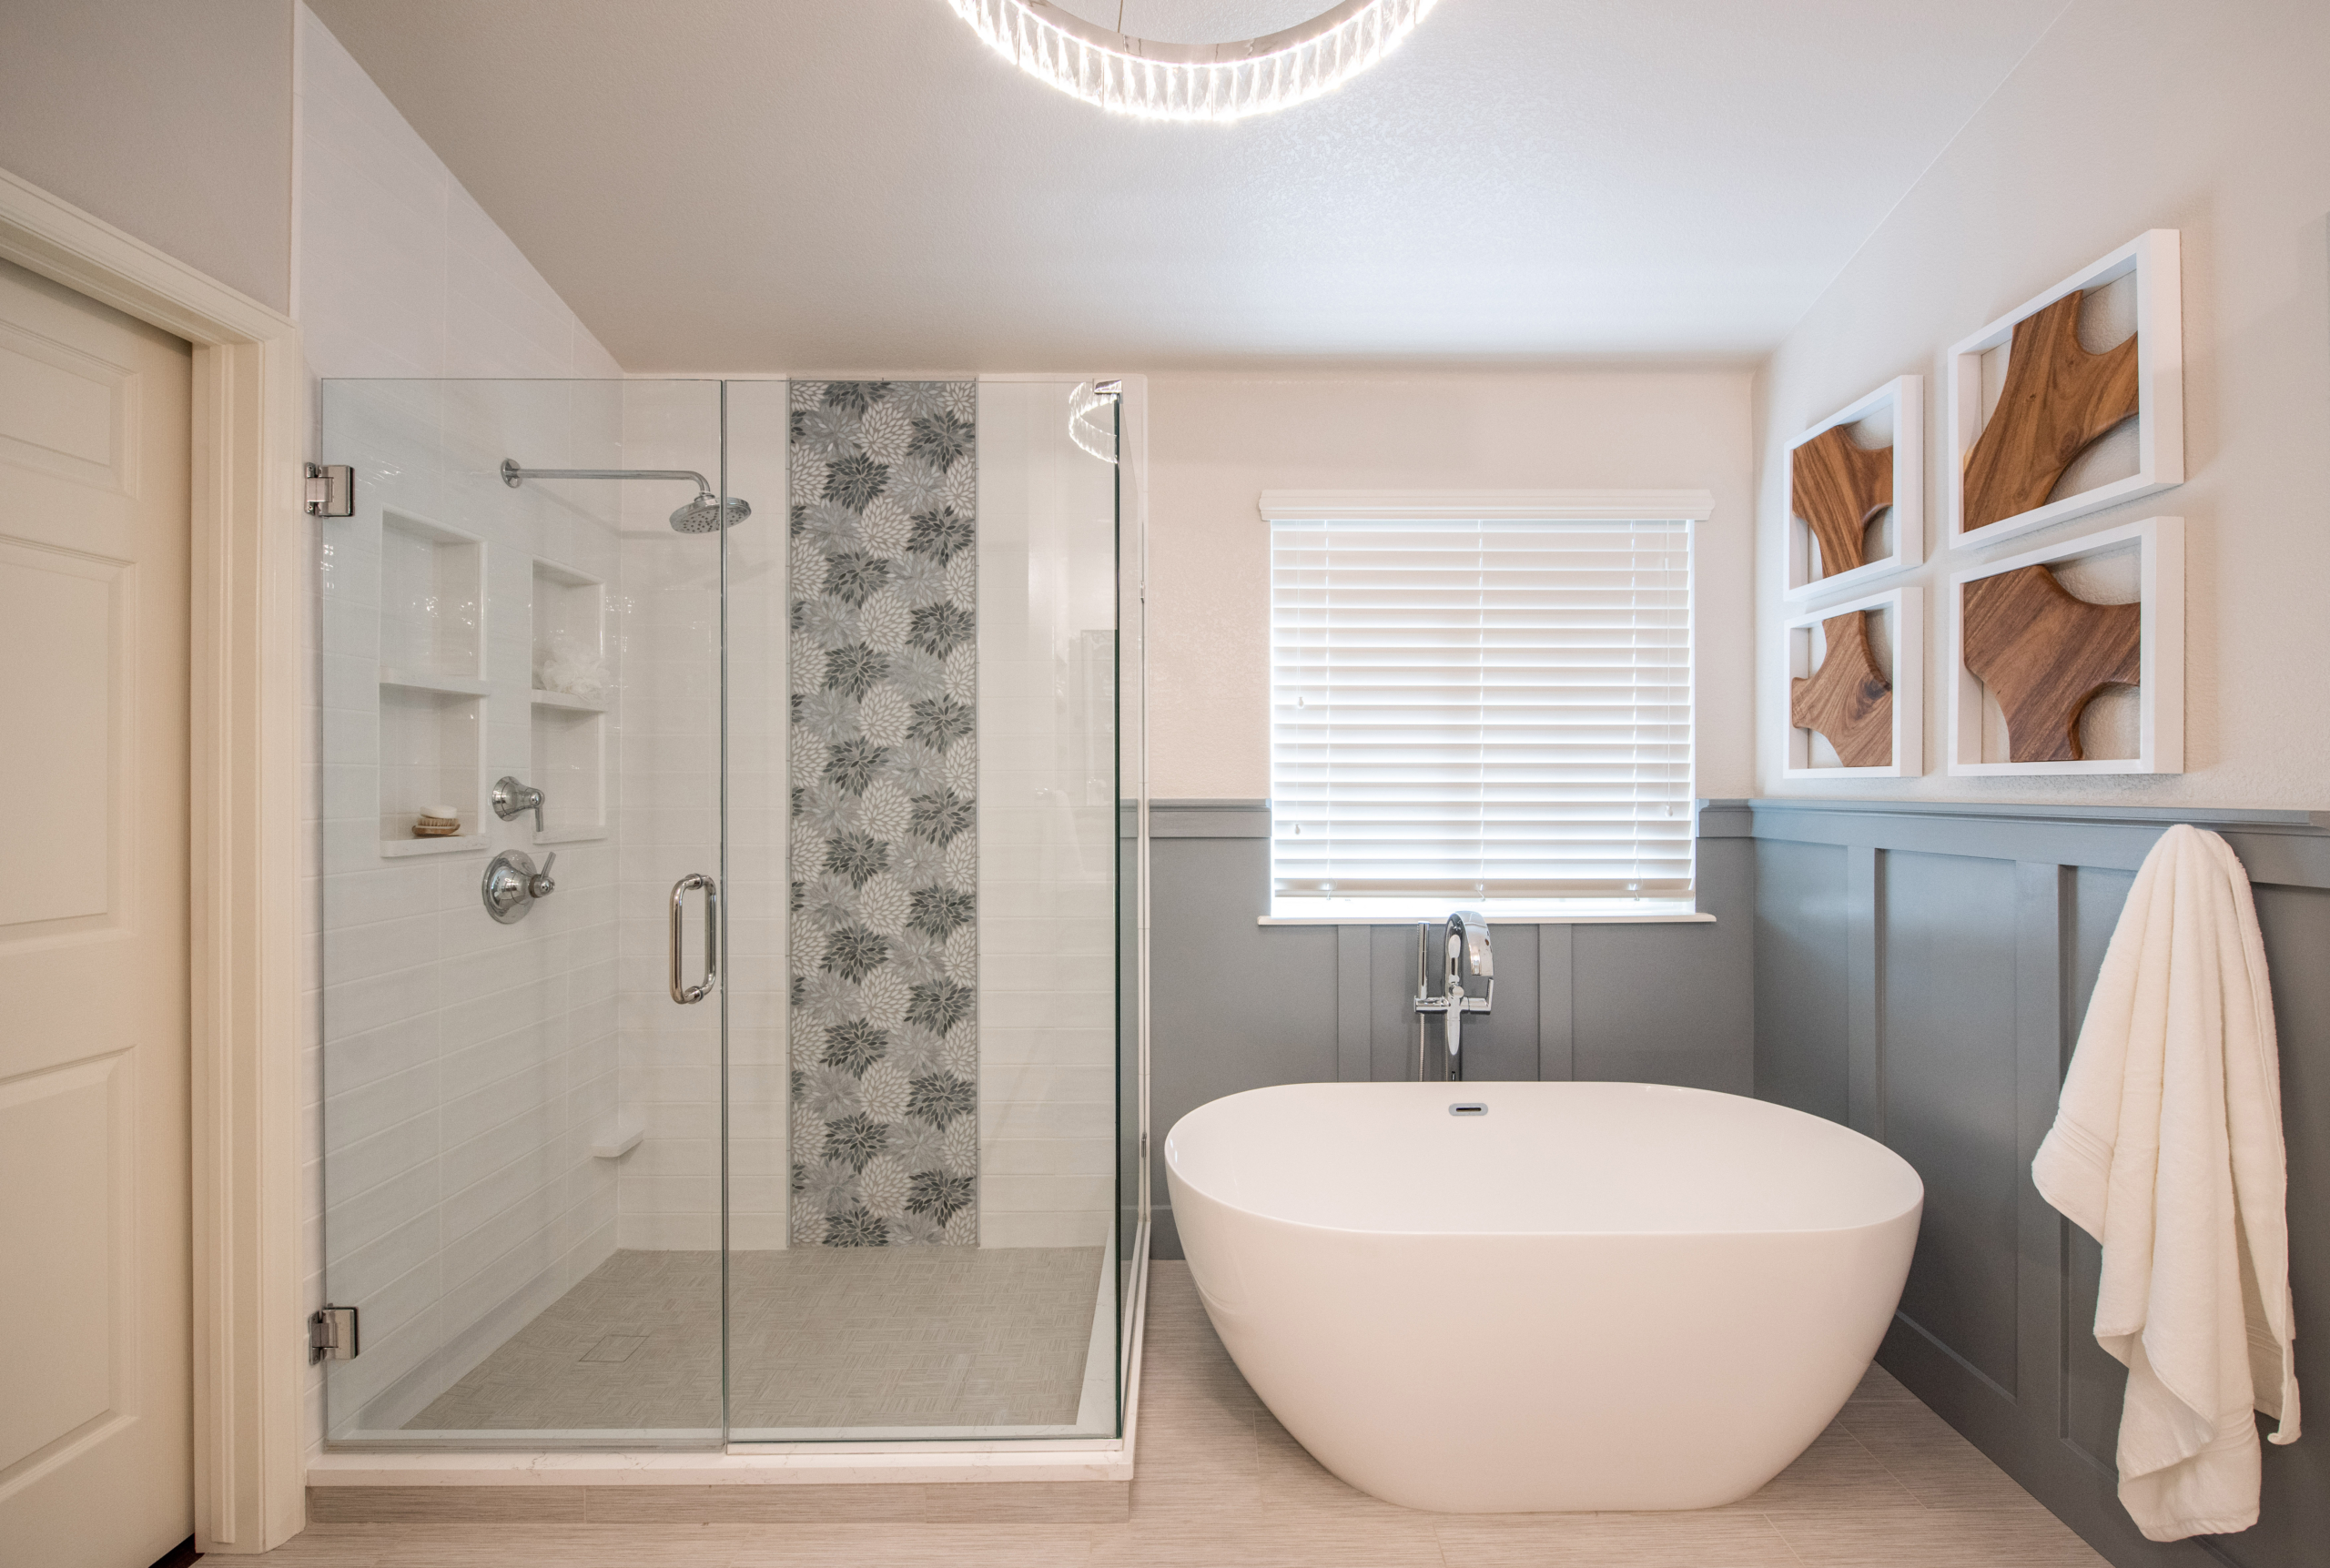 modern glass surround shower in master bath with white subway tile and light blue floral mosaic accent. Next to free standing tub, light blue paneling, wood artwork on walls